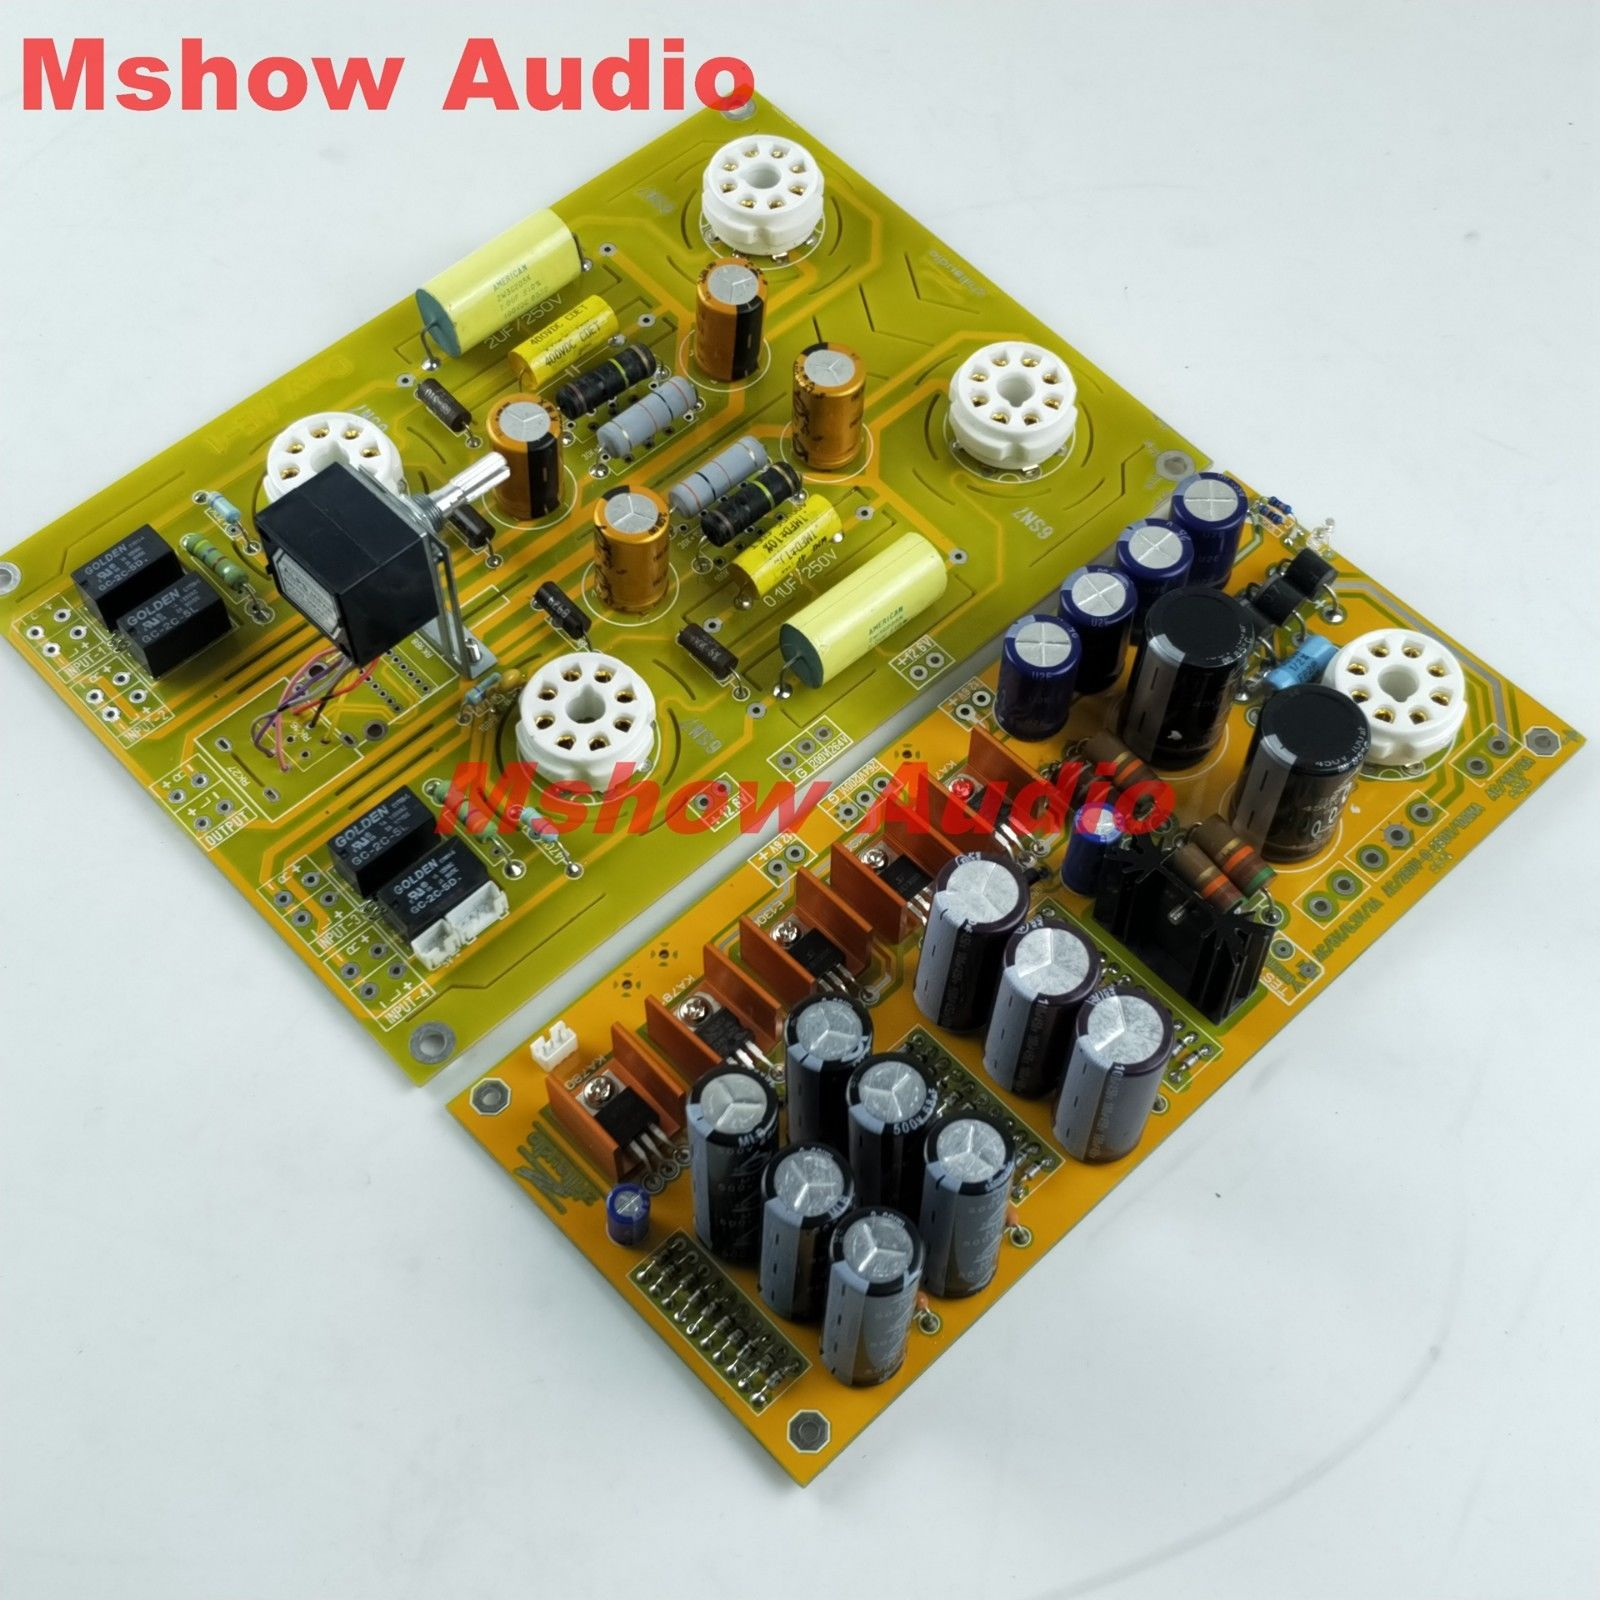 Famous circuit 6SN7 Tube preamplifier DIY KIT refer Cary AE-1 preamp HIFI audio option bare pcb board pre-amp direct manufacturers 6j4 6p6p amps preamp tubes diy vacuum tube pre amp hifi audio preamplifier